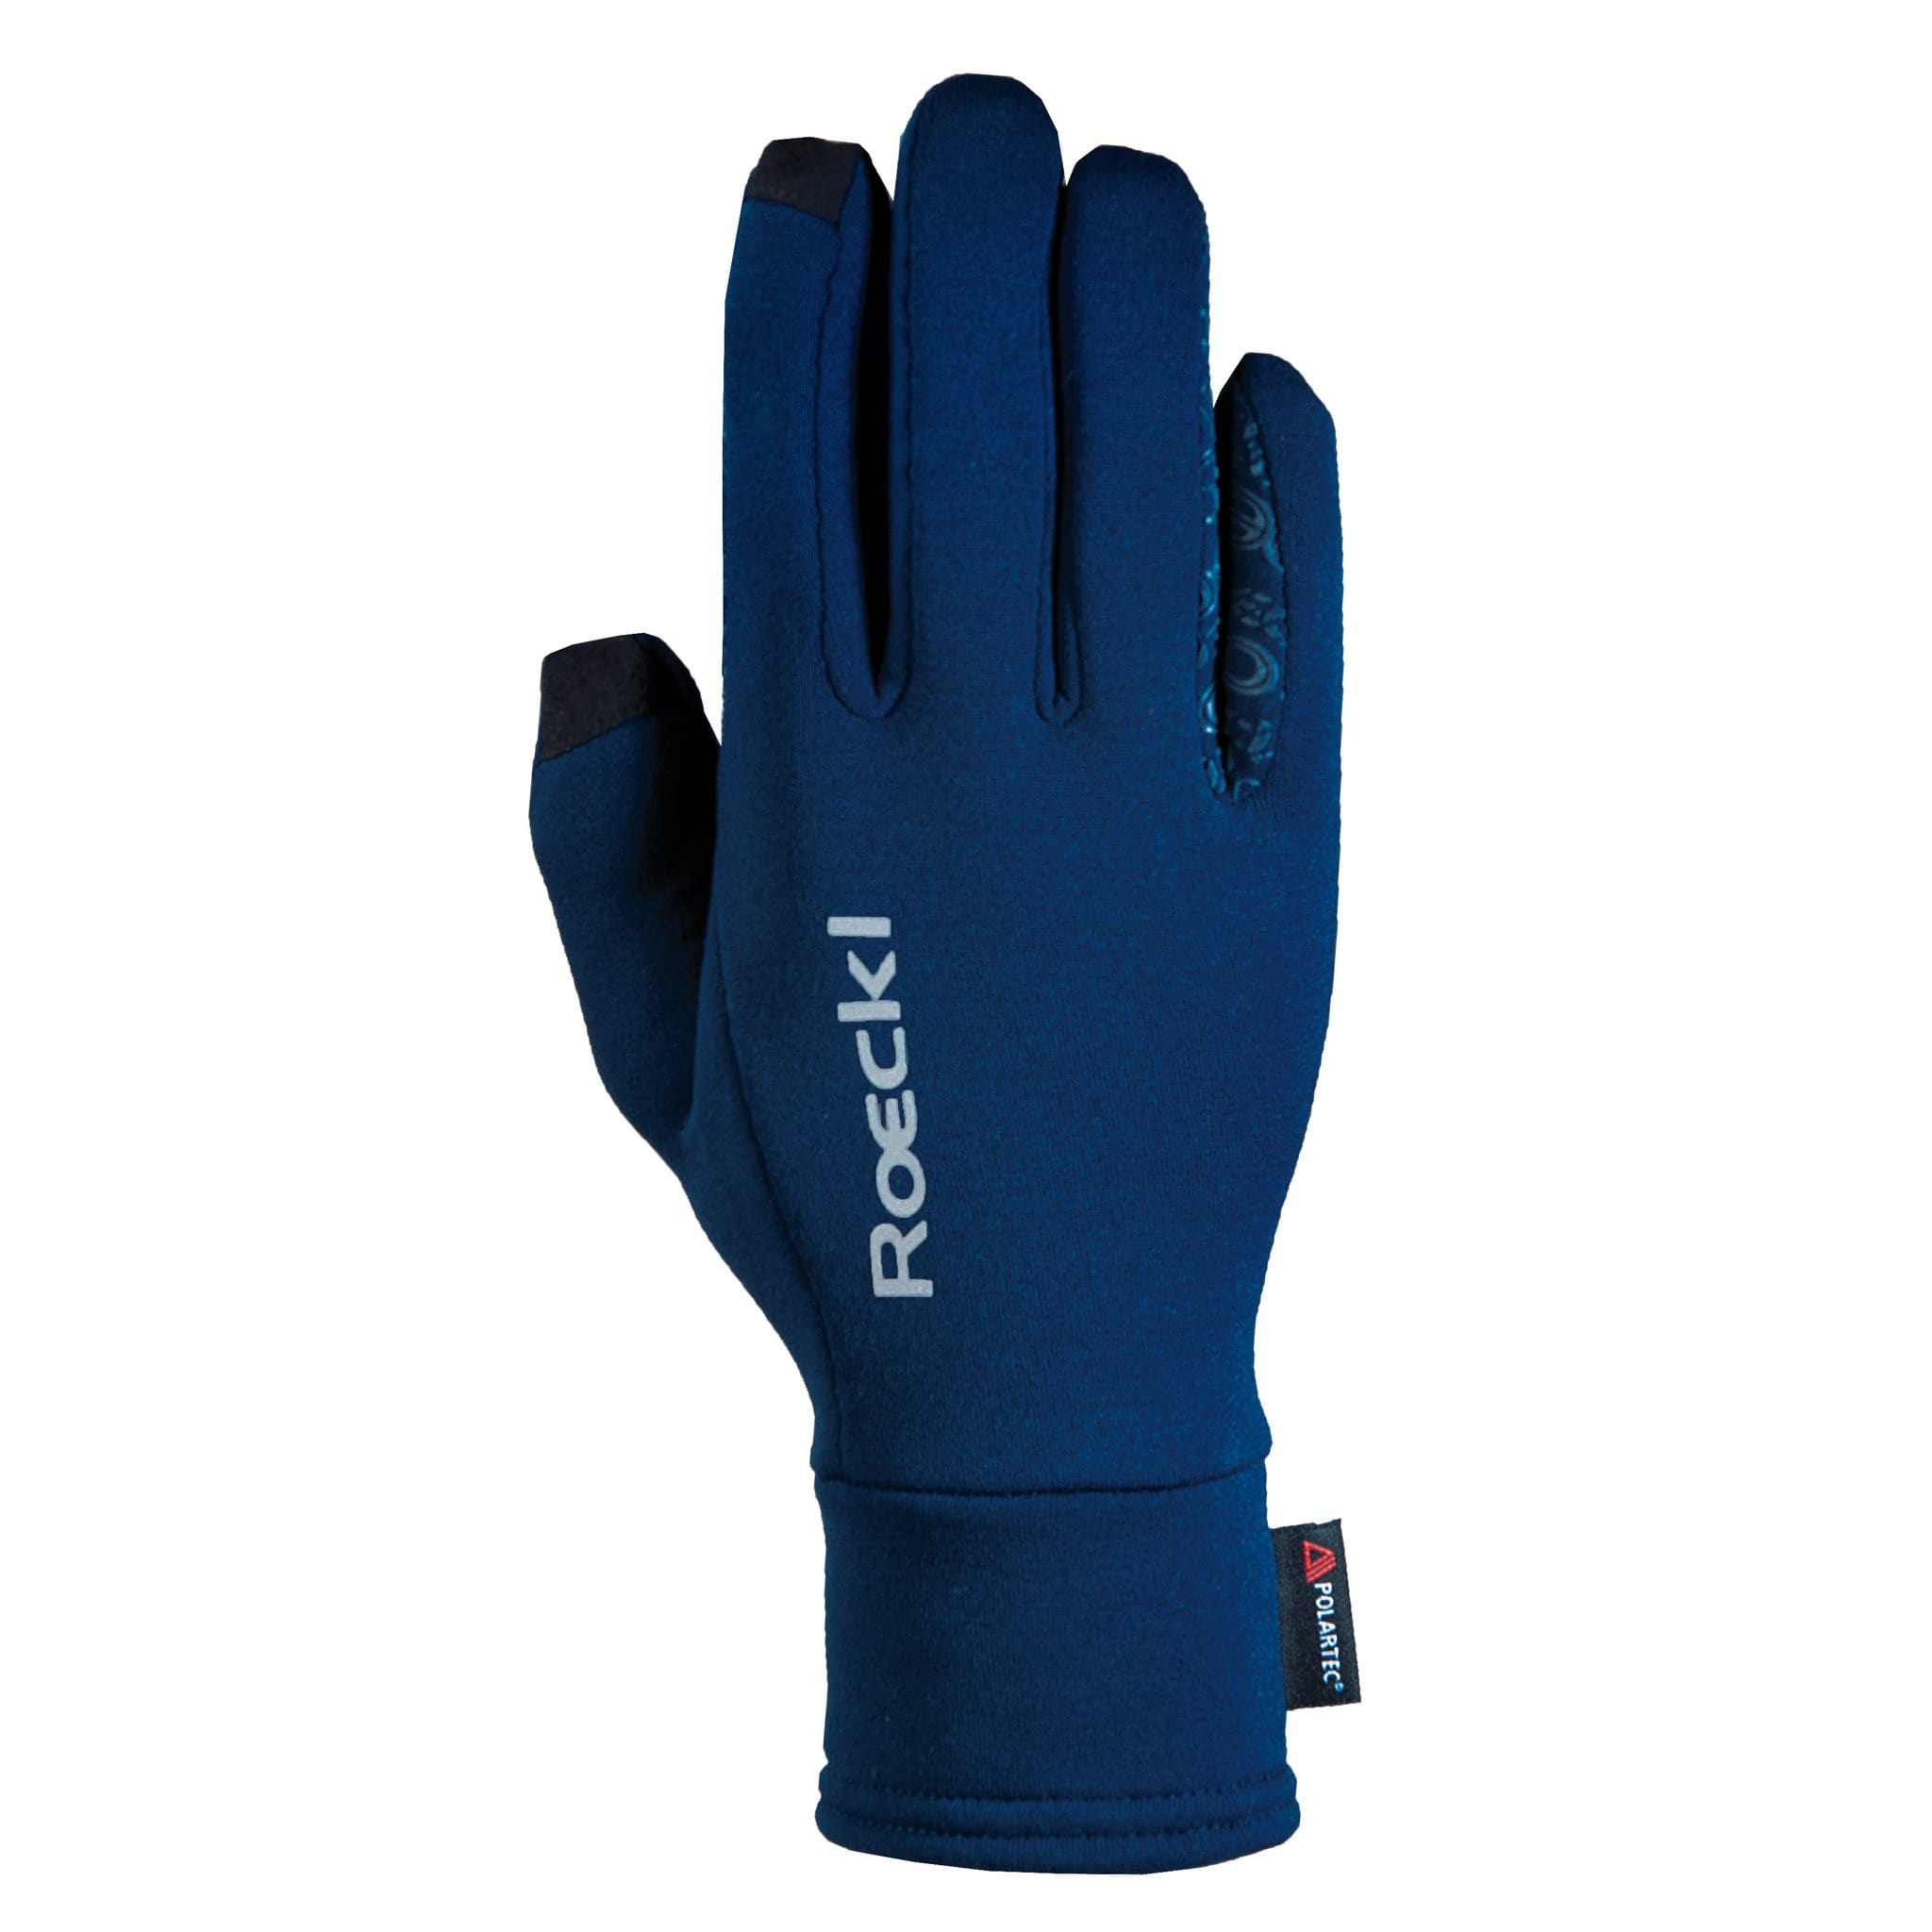 Roeckl Polartec Touch Gloves Navy 3301-623-590